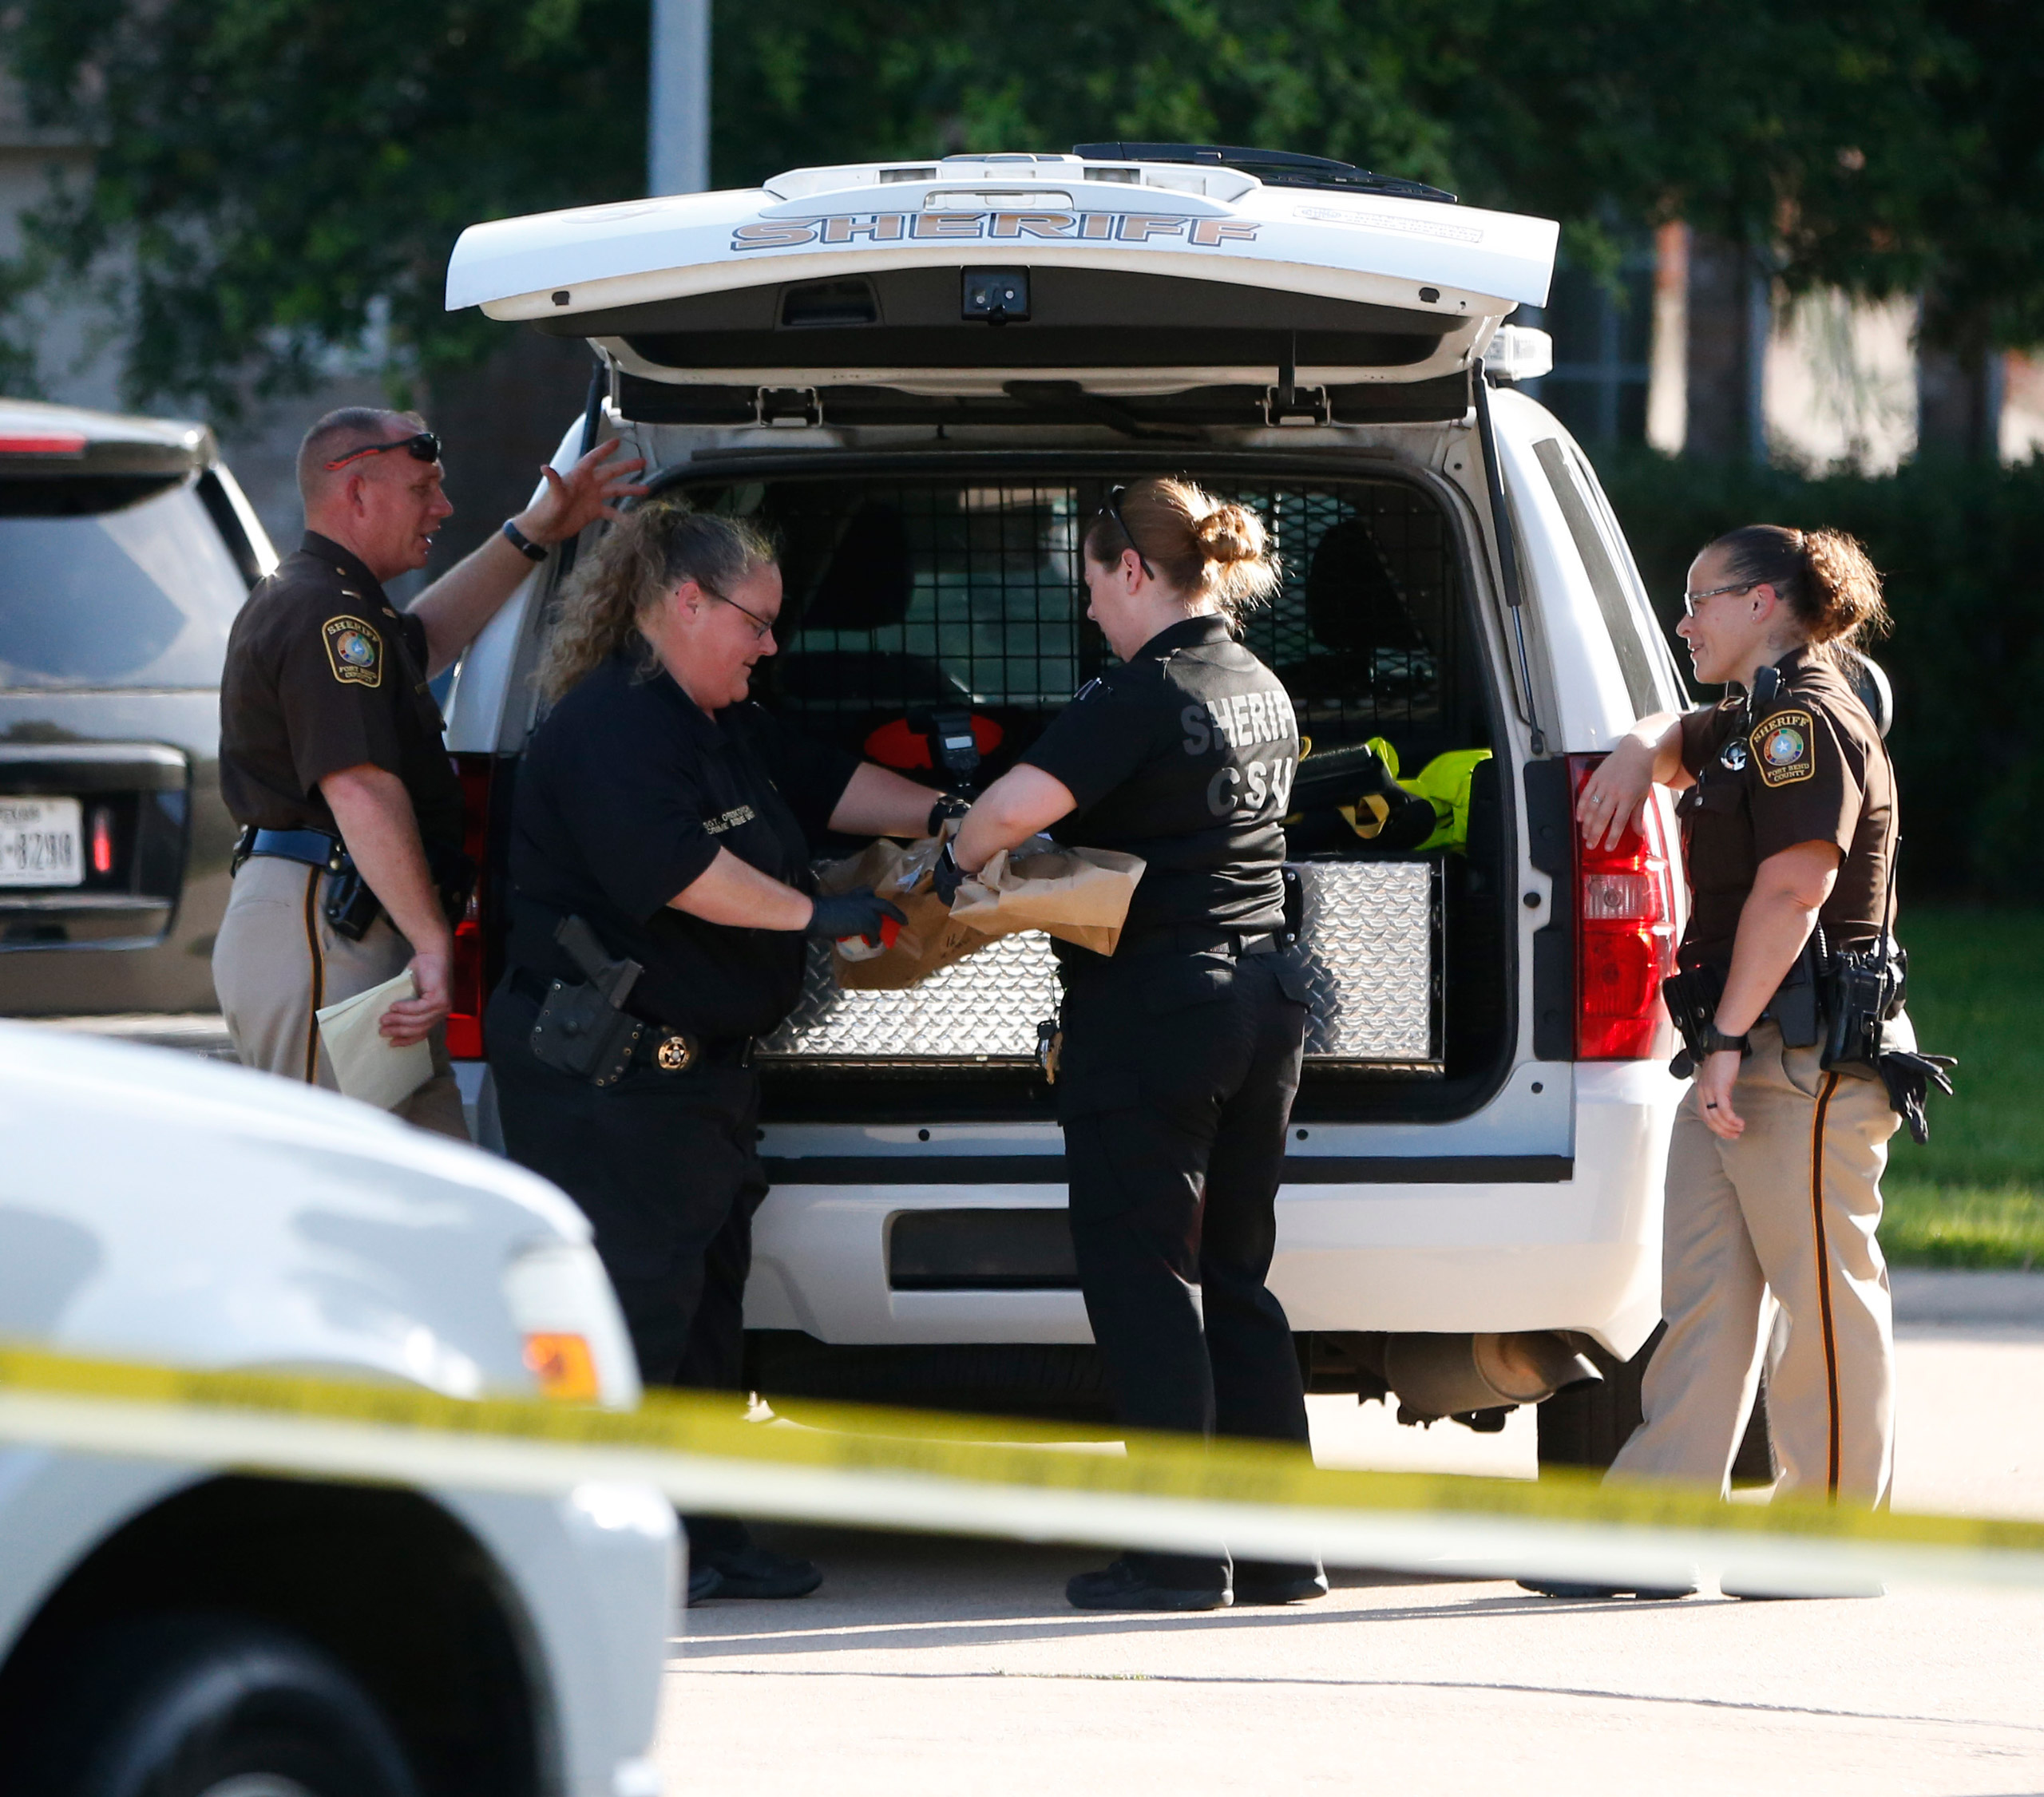 Fort Bend County Sheriffs department crime scene members bag a gun for evidence in a shooting in Katy, Tx., on June 24, 2016.